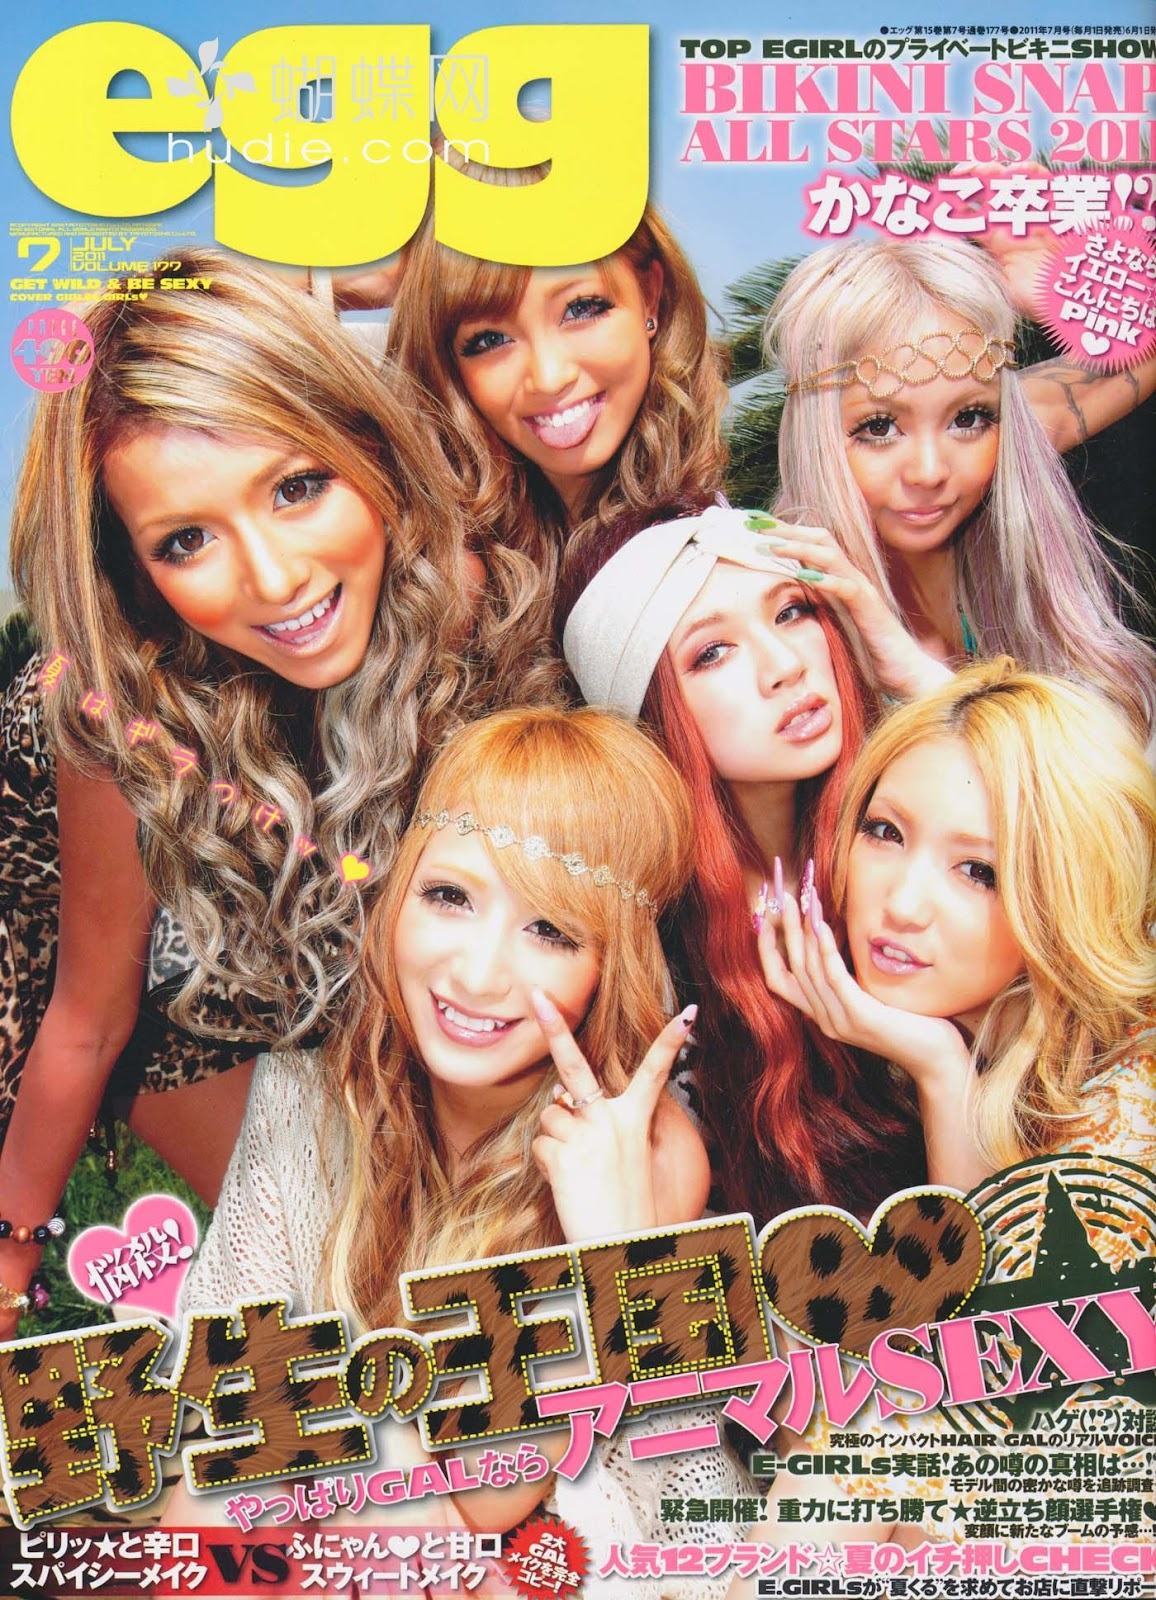 egg july 2011 gyaru magazine scans